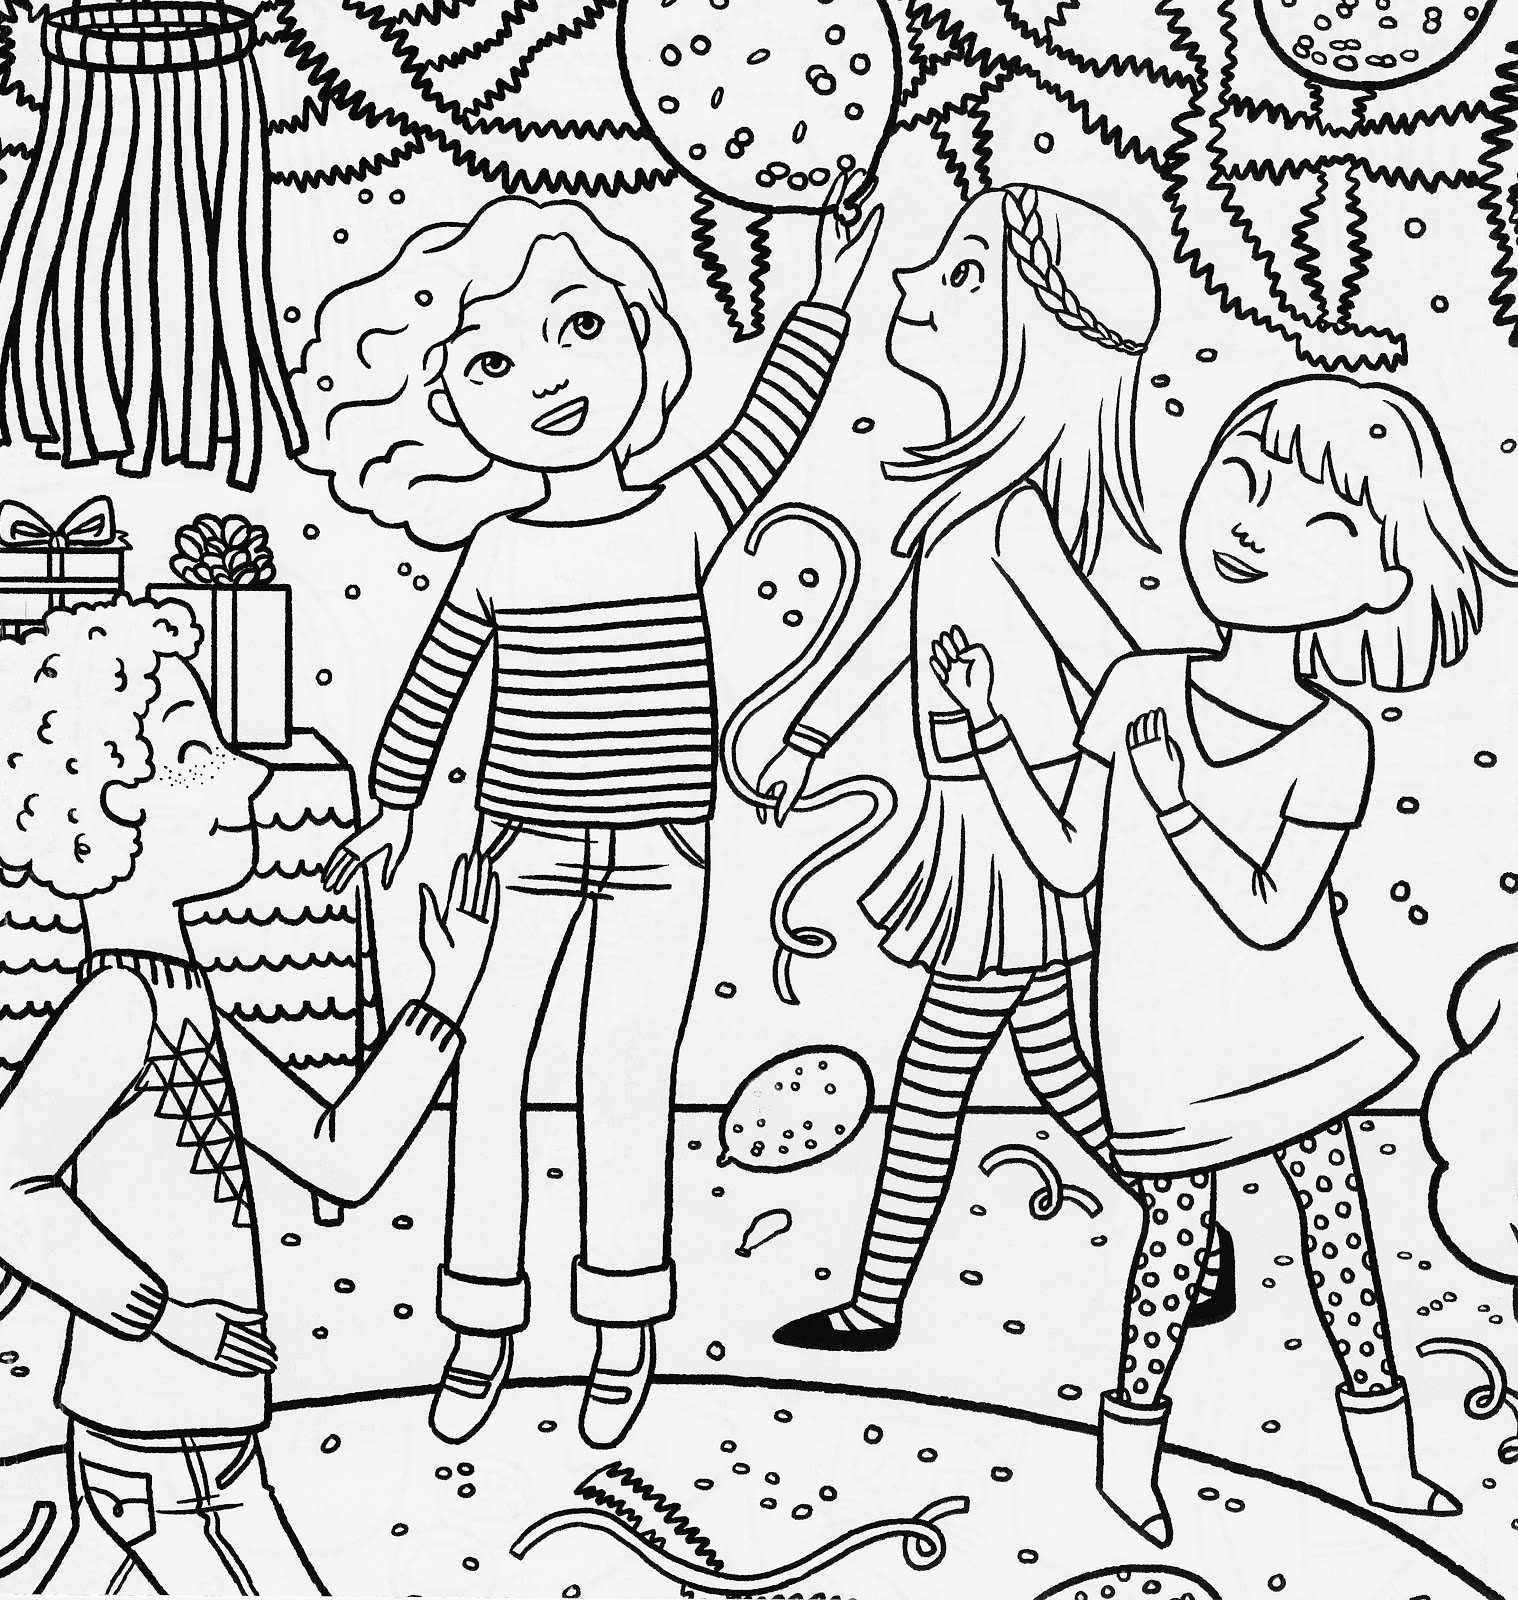 my birthday party drawing for kids ; BirthdayColoringPages1